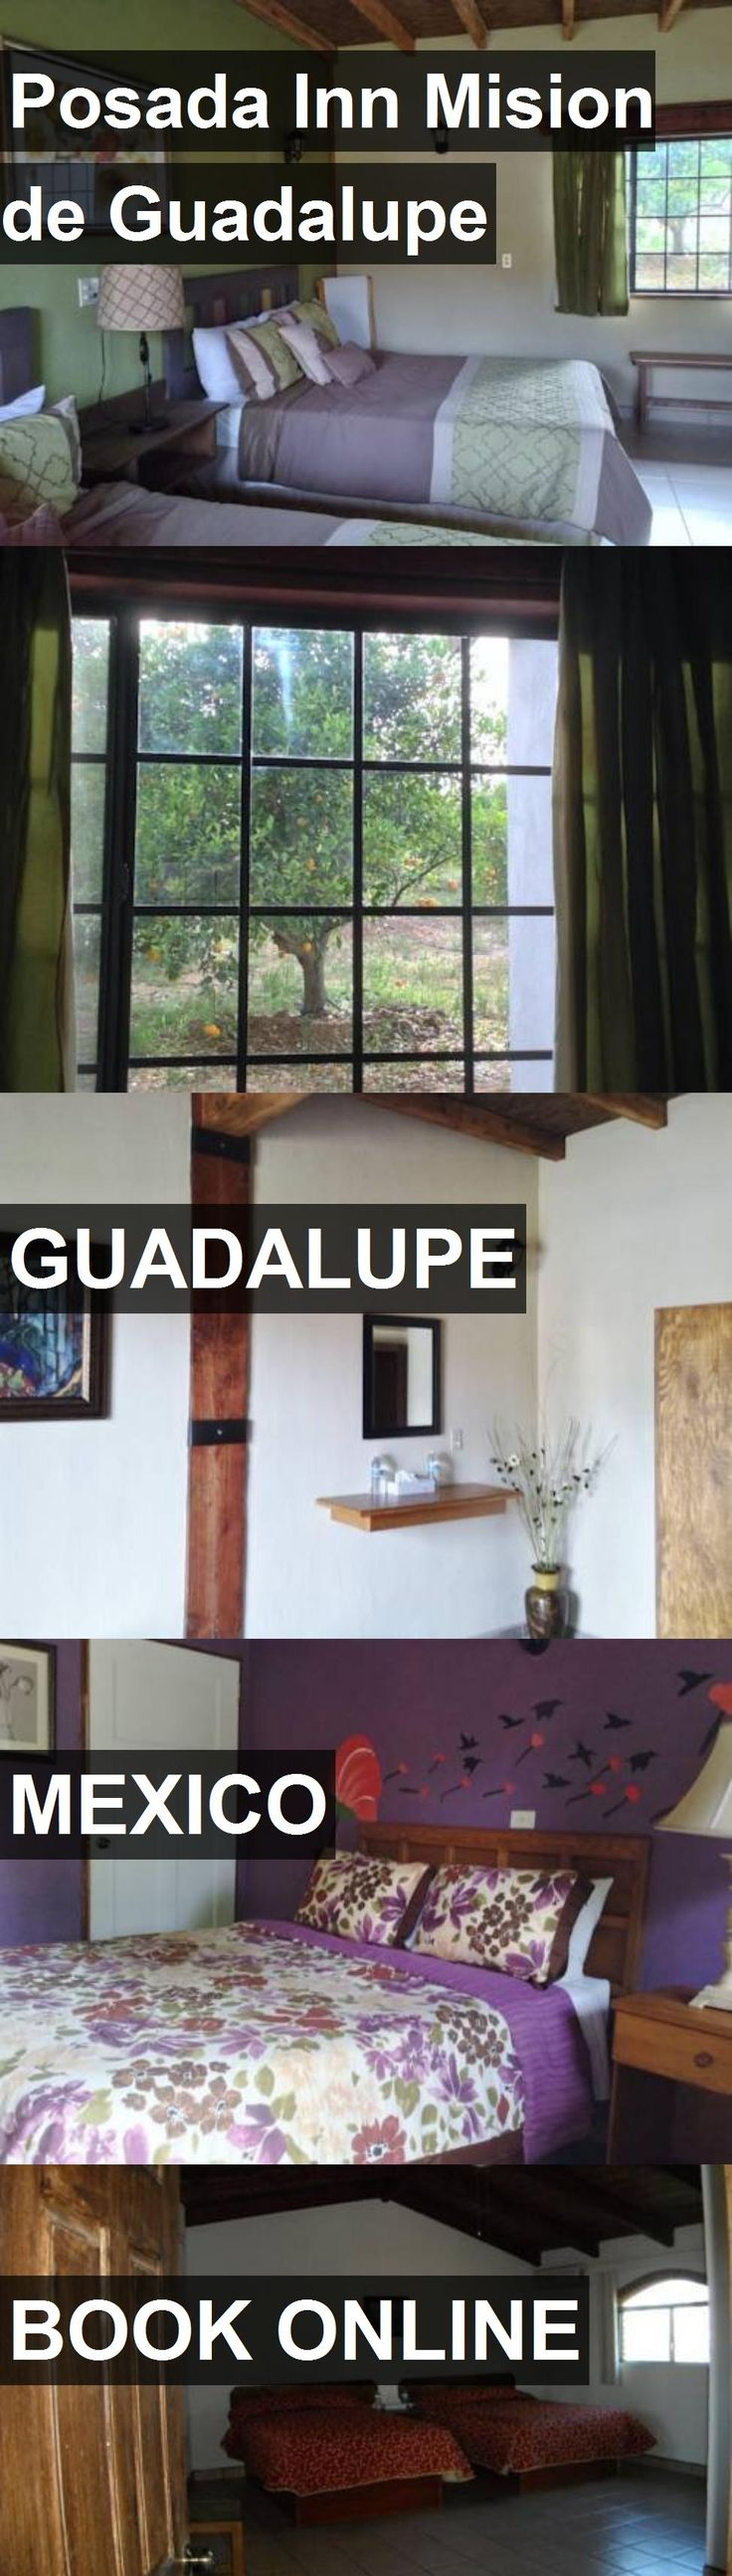 Hotel Posada Inn Mision de Guadalupe in Guadalupe, Mexico. For more information, photos, reviews and best prices please follow the link. #Mexico #Guadalupe #hotel #travel #vacation